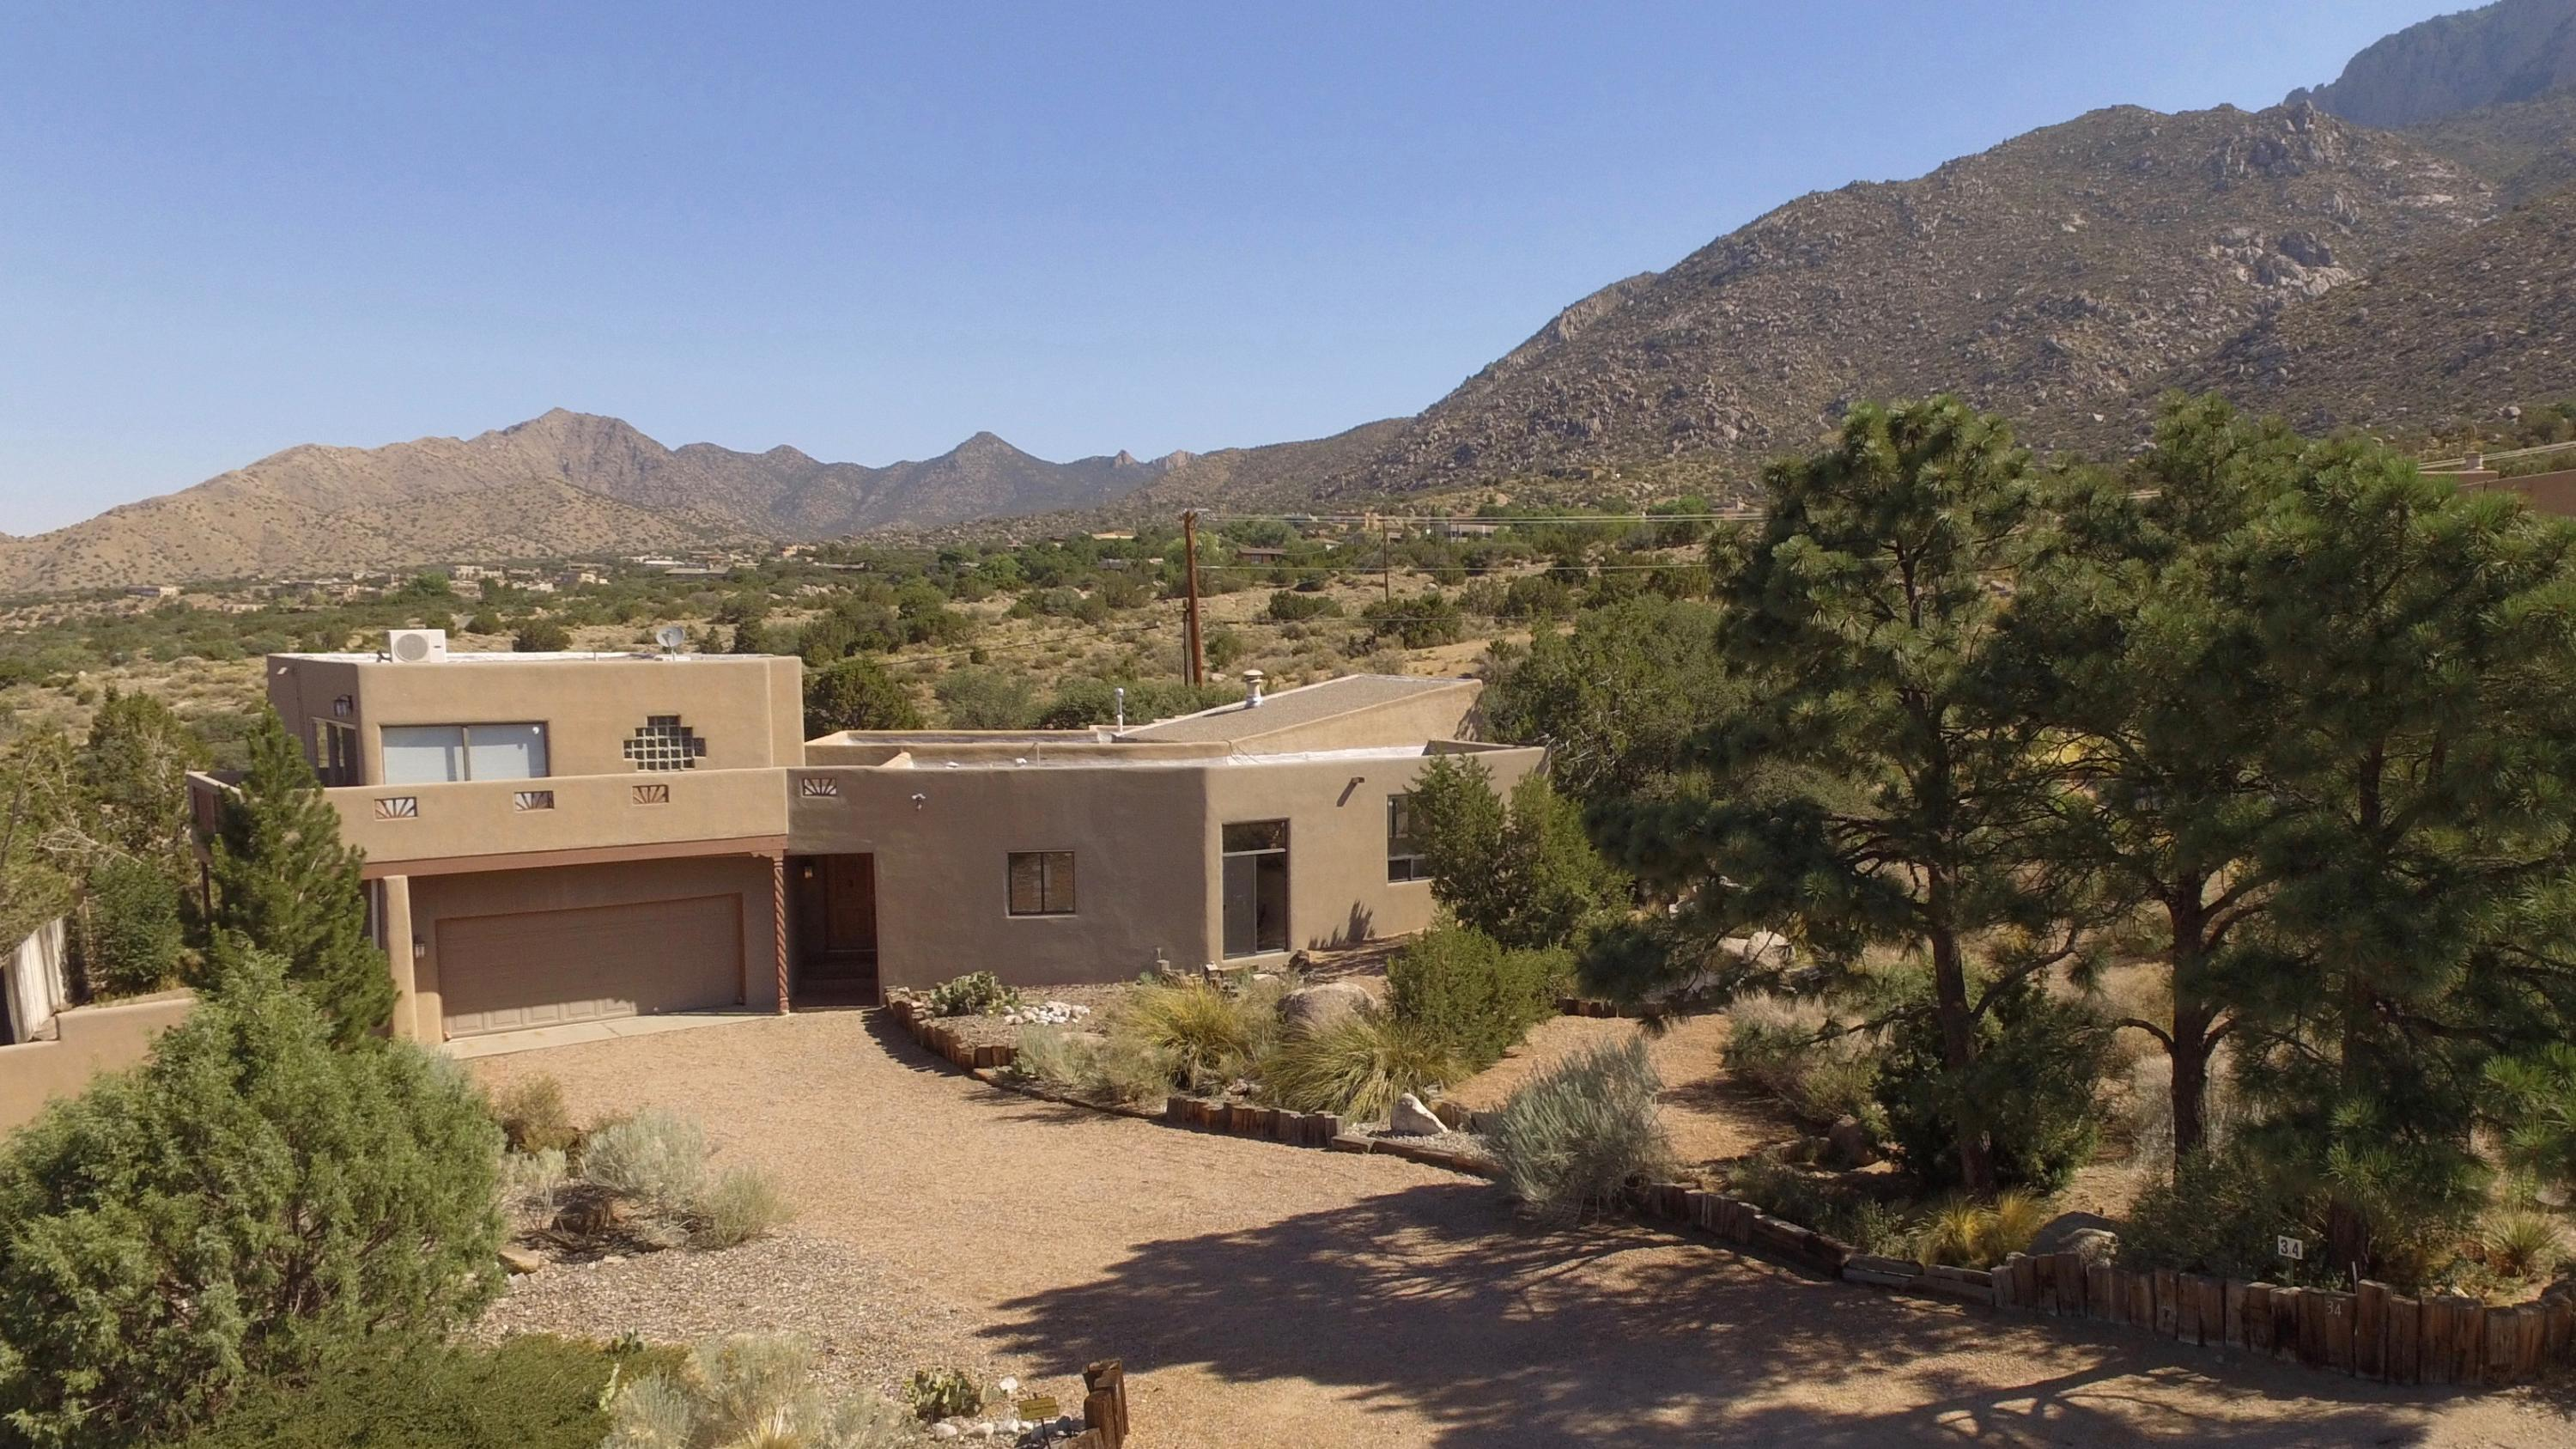 34 CEDAR HILL PLACE NE, ALBUQUERQUE, NM 87122